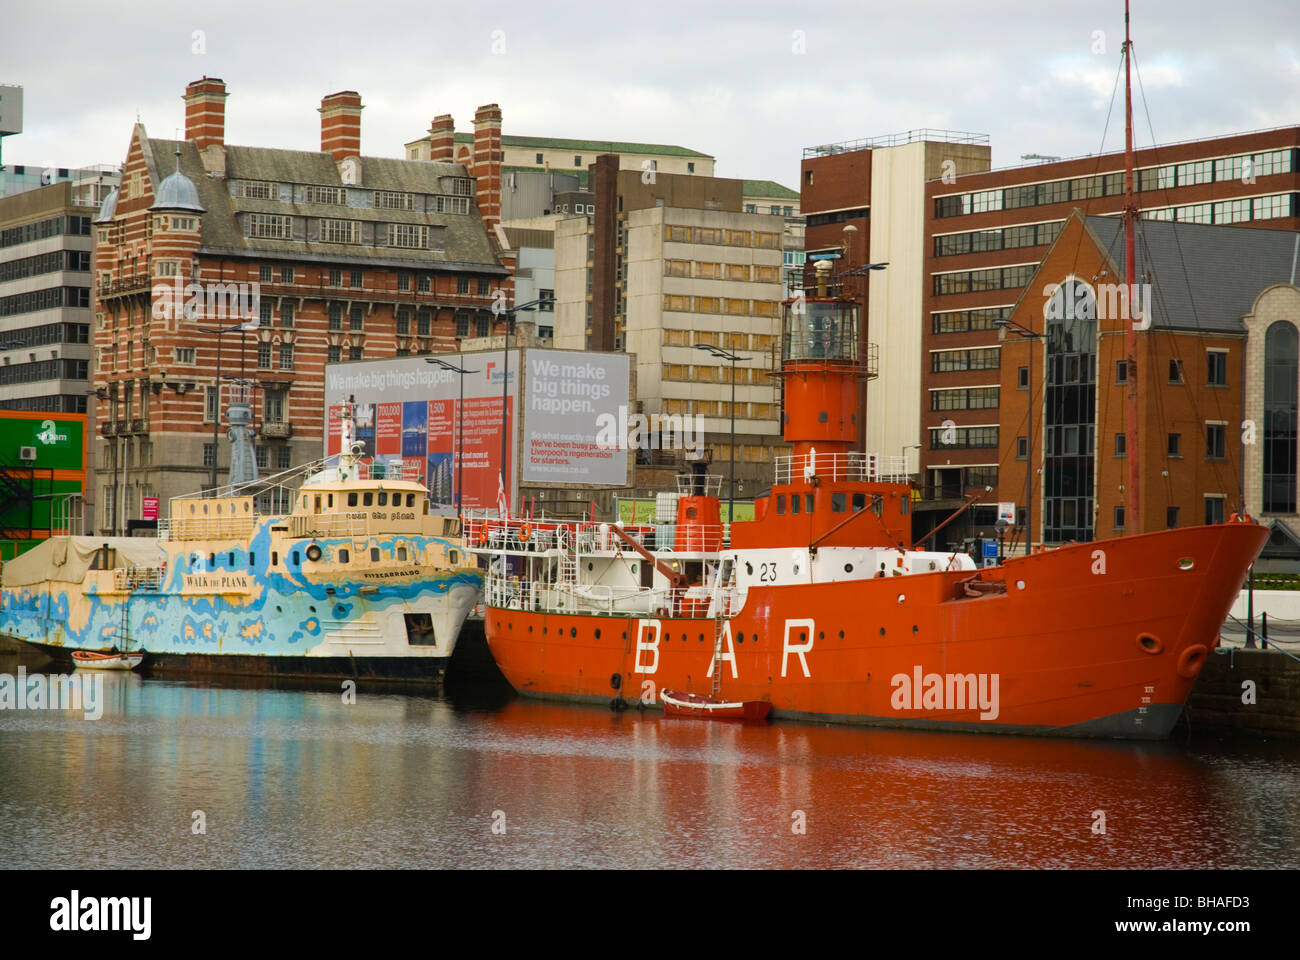 Moored ships Canning Dock central Liverpool England UK Europe - Stock Image